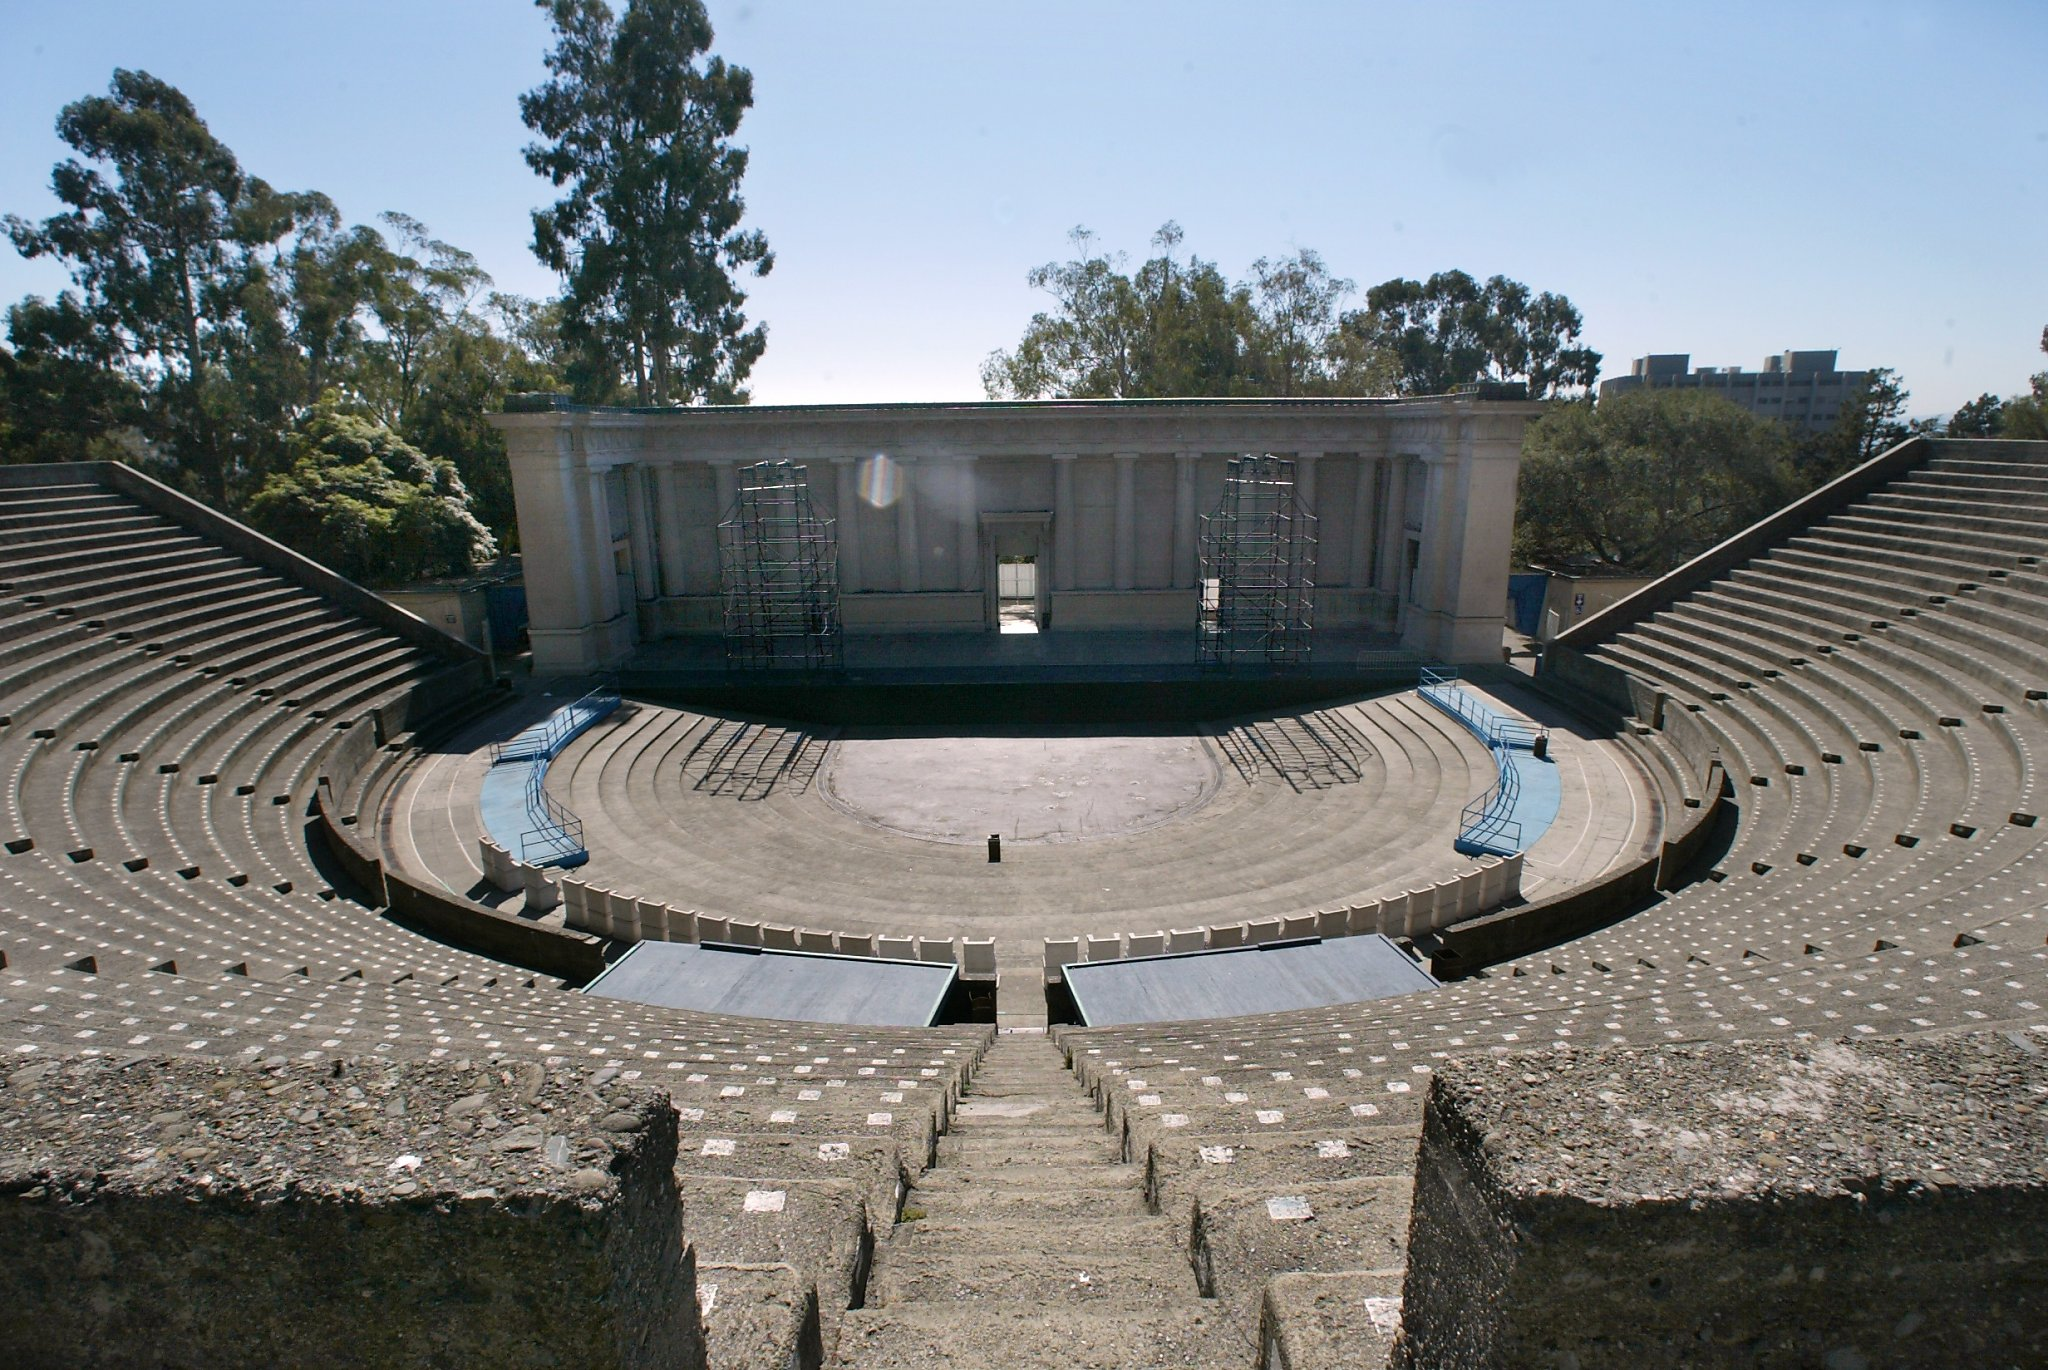 an introduction to the history of women in greek theatre The greek theatre history began with festivals honoring their gods a god, dionysus, was honored with a festival called by city dionysia in athens, during this festival, men used to perform songs to welcome dionysus.